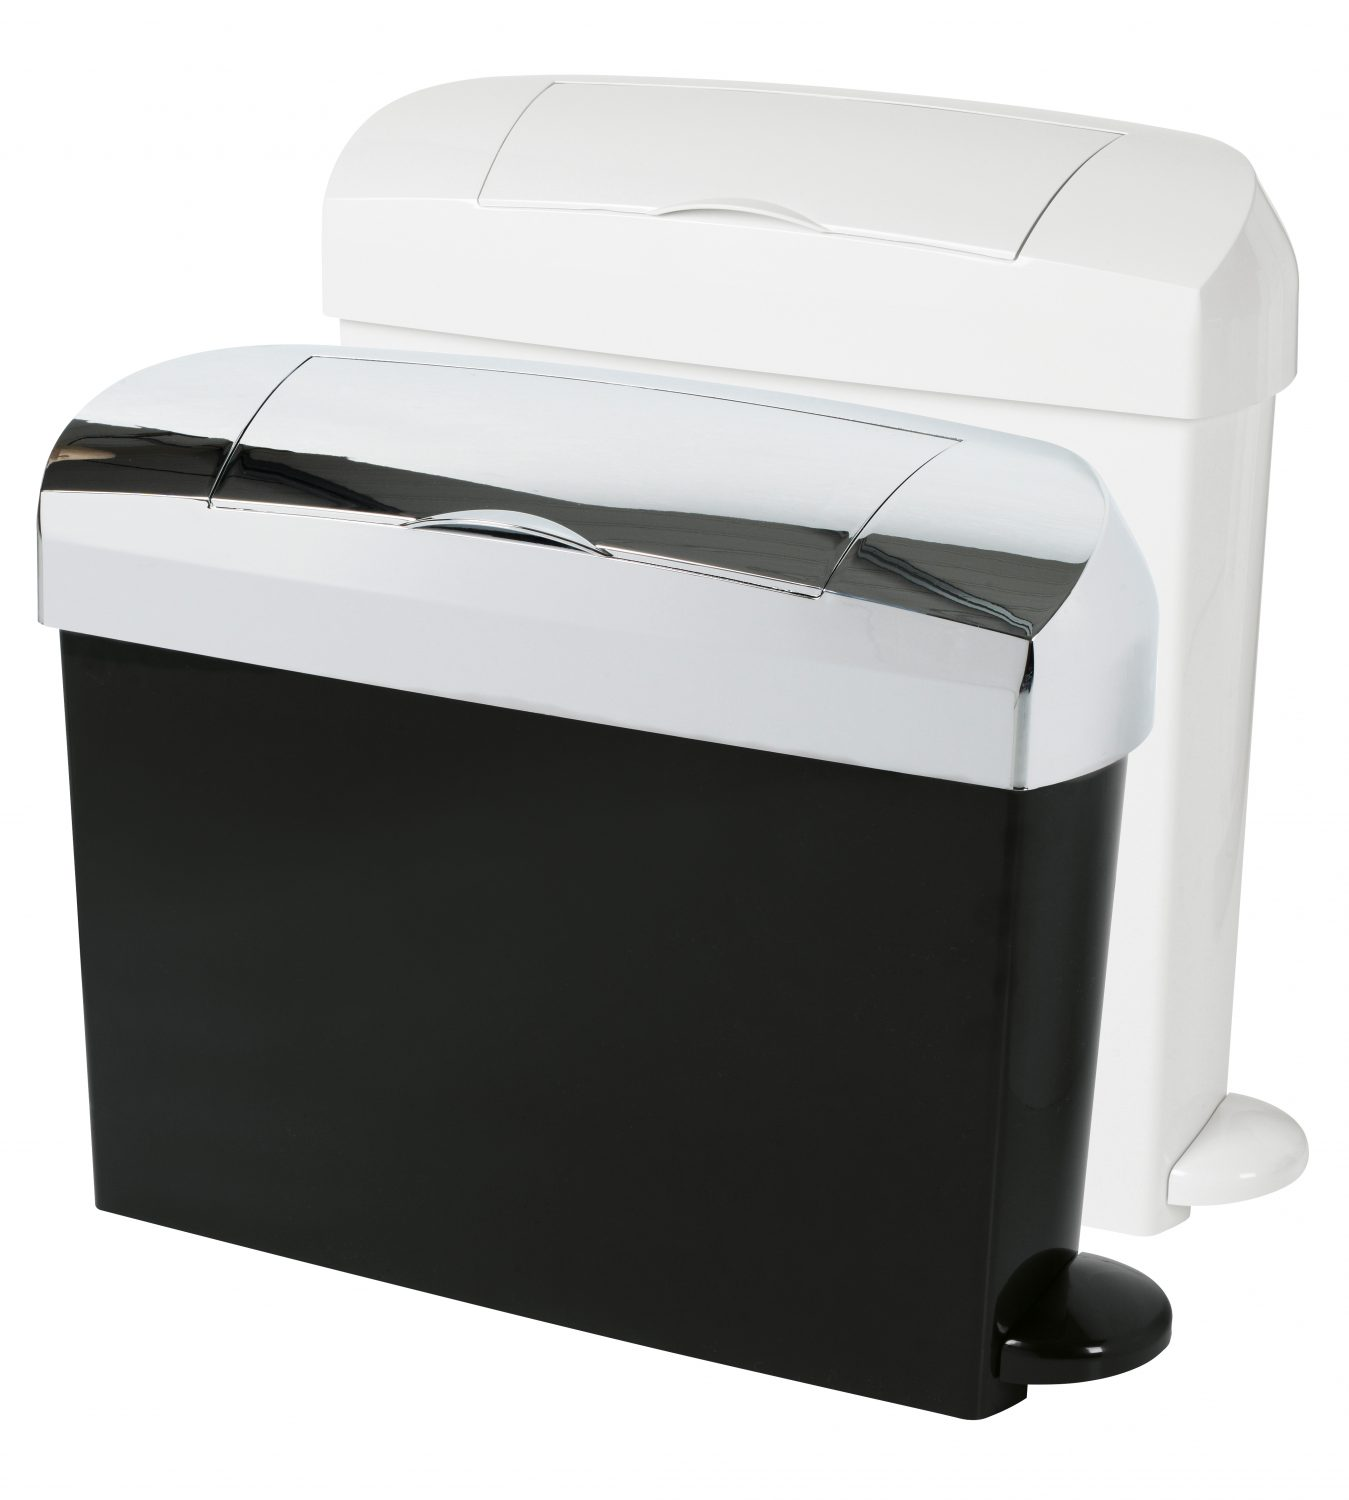 White and Black Sanitary Bin